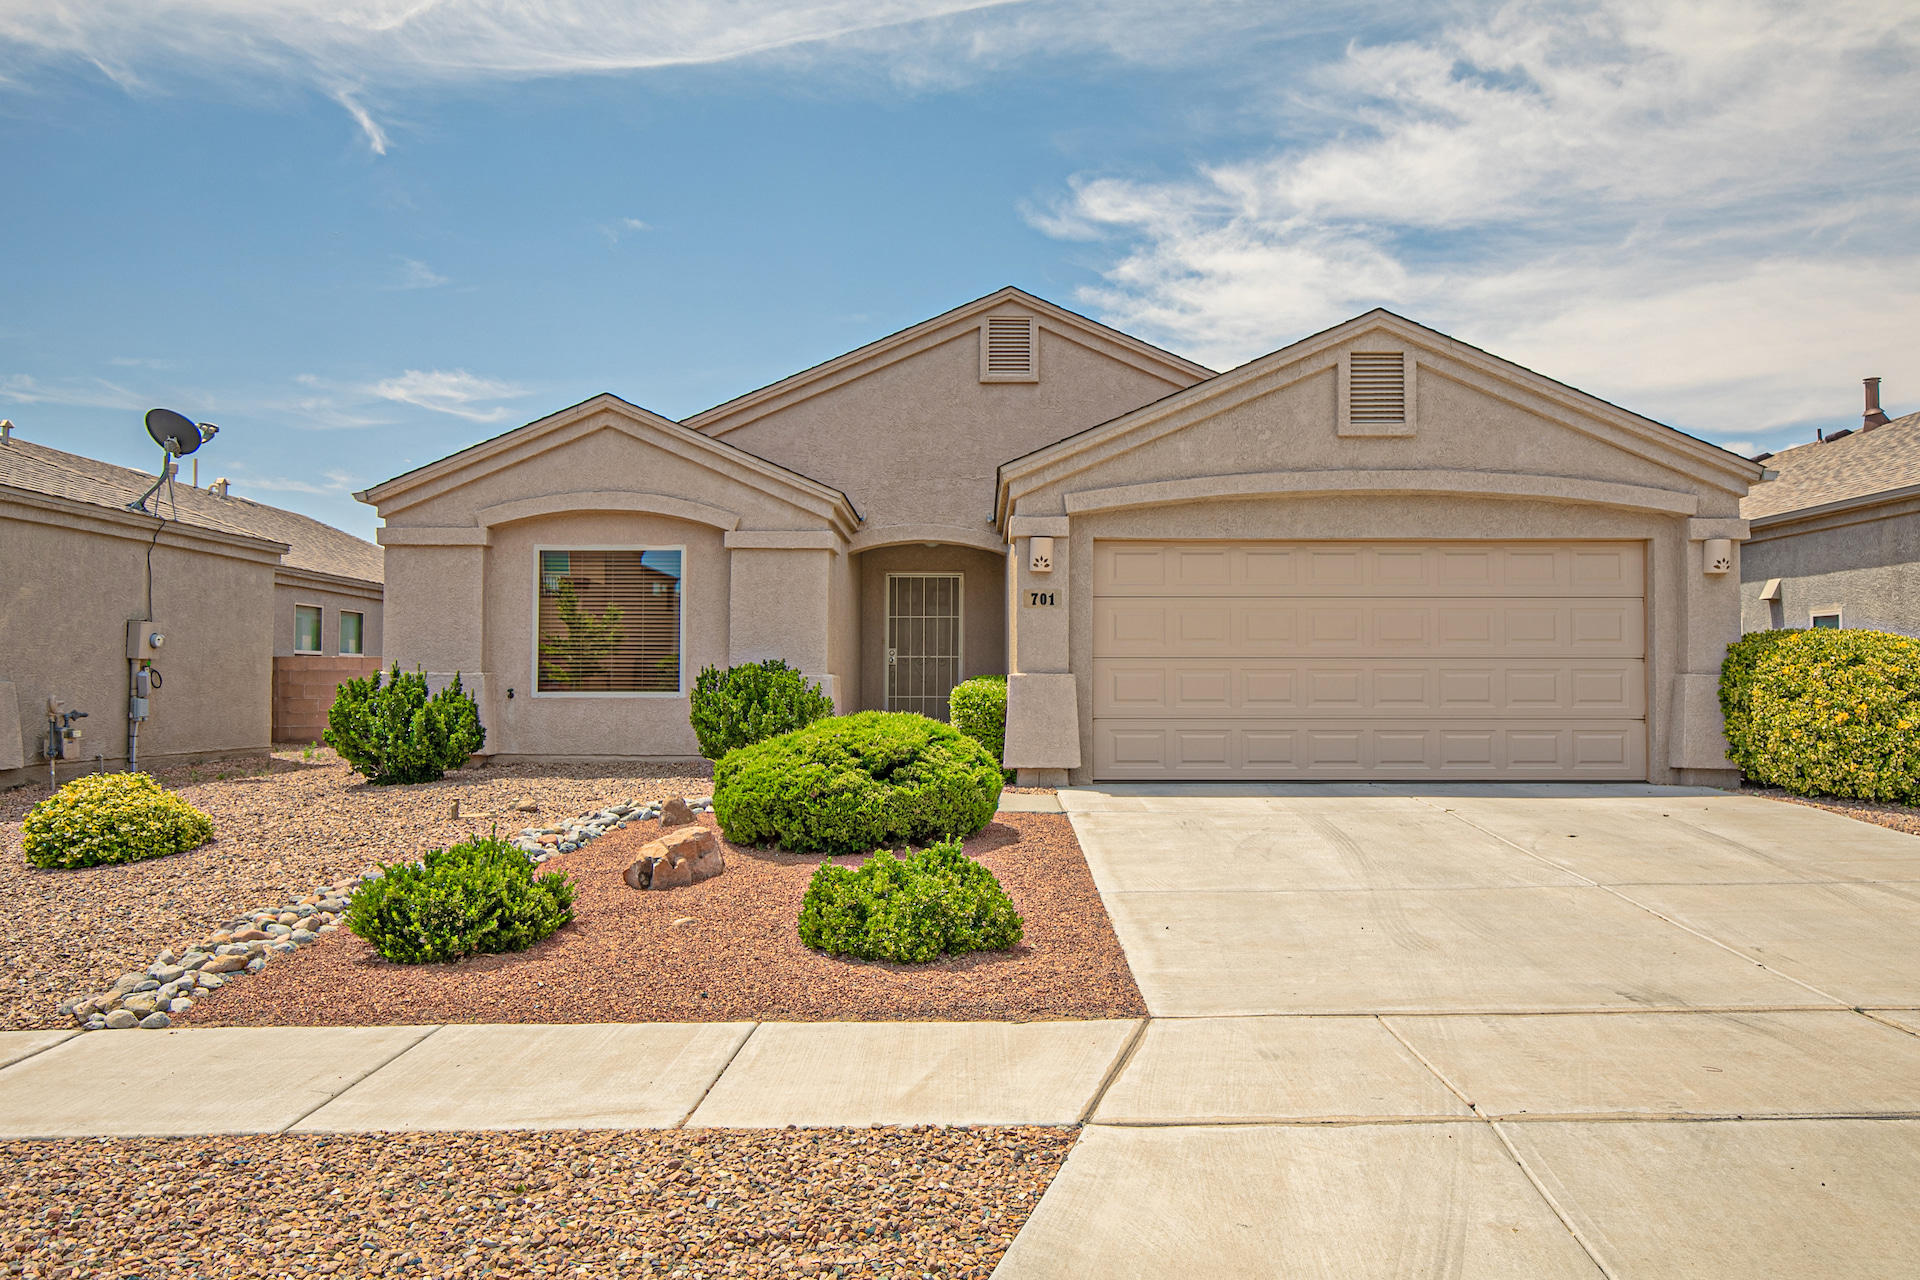 You're going to love this well taken care of home in Wildflower Community. Its a quiet gated community conveniently located near I-25, parks, shopping, theaters, and restaurants. Roof (2014) with a transferable warranty. This lovely Charter has a cozy and inviting open floor plan, kitchen island, gas log fire place, quarry stone terra tile floors throughout and laminate wood floors in the bedrooms. This home is turn key and priced to sell! Come and see it today!